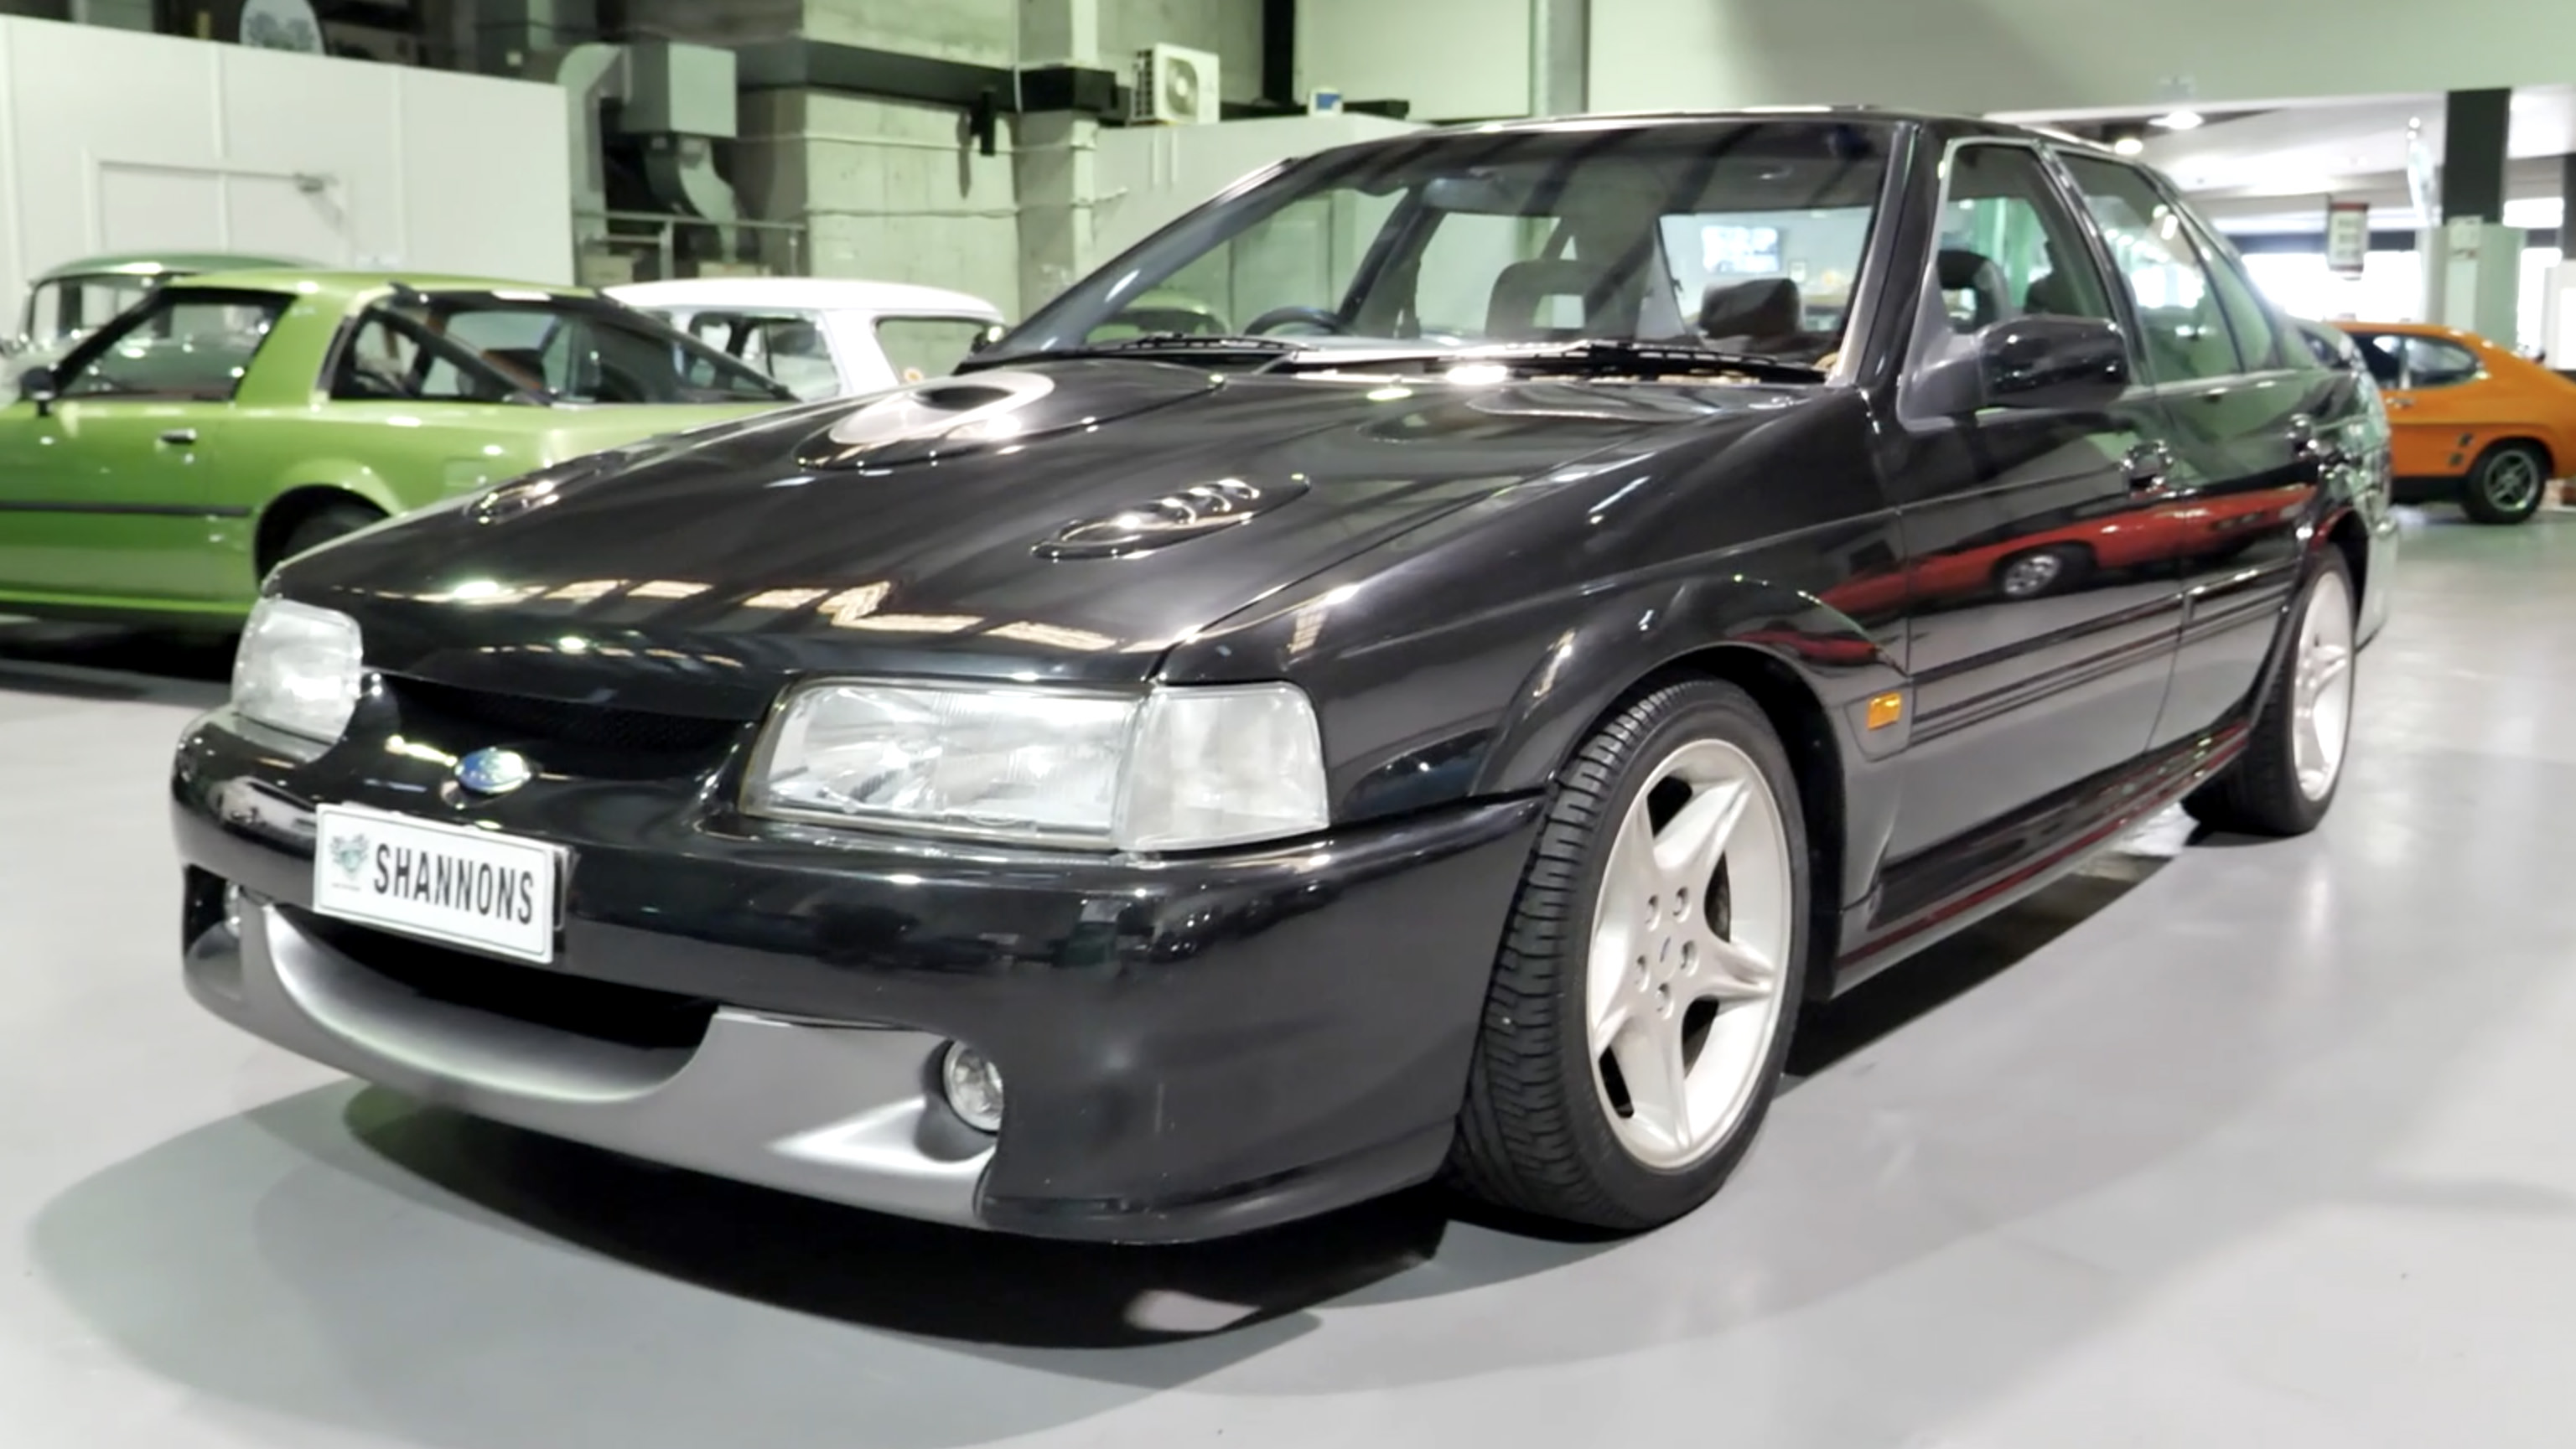 1992 Ford EB Falcon GT 'Manual' Sedan (Build No. 044) - 2020 Shannons Spring Timed Online Auction